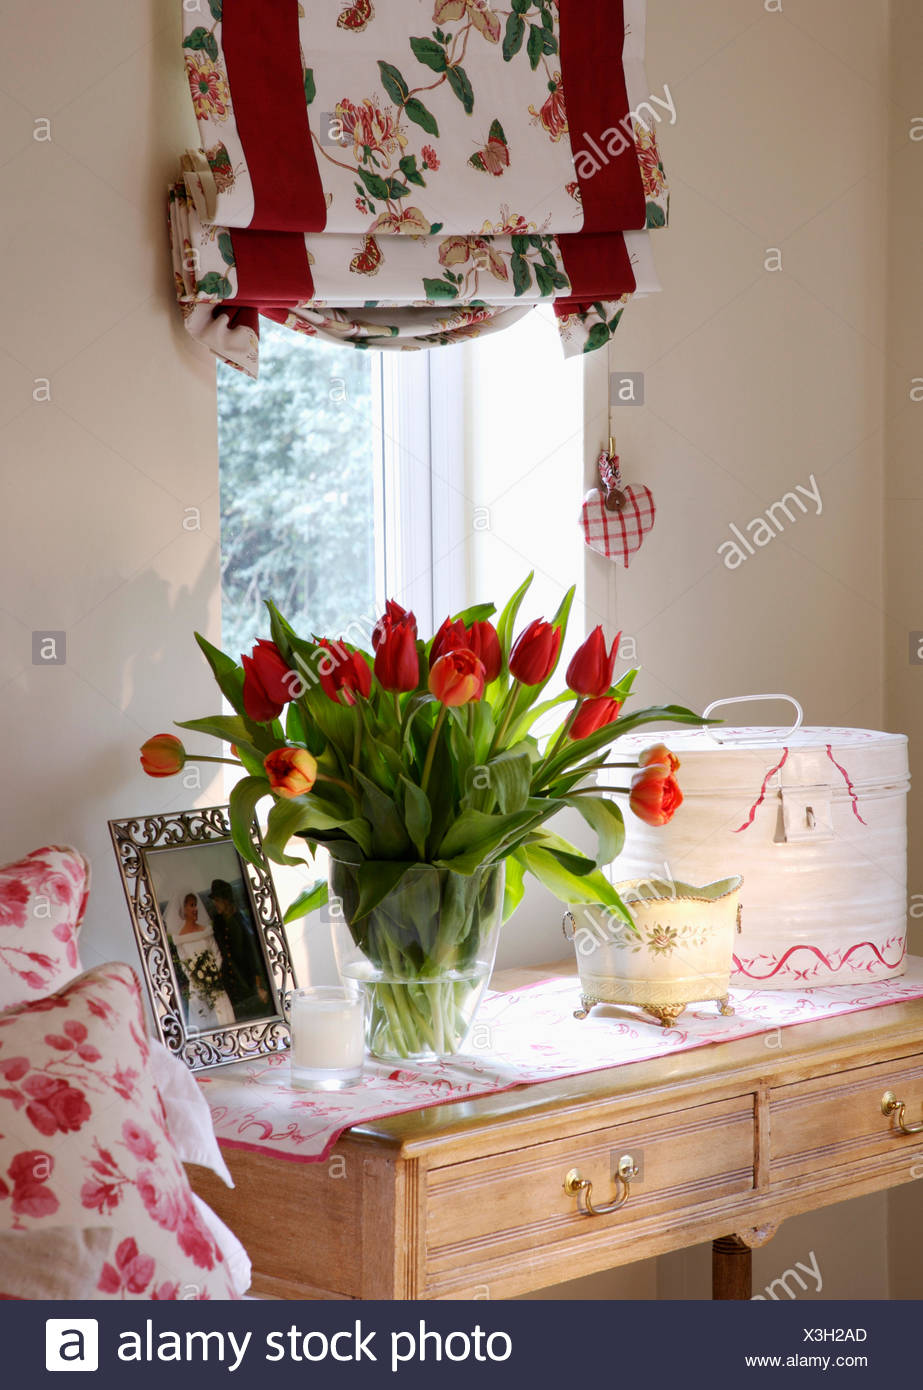 Vase country flowers on window stock photos vase country flowers floral blind on window above dressing table with vase of red tulips and framed photograph reviewsmspy